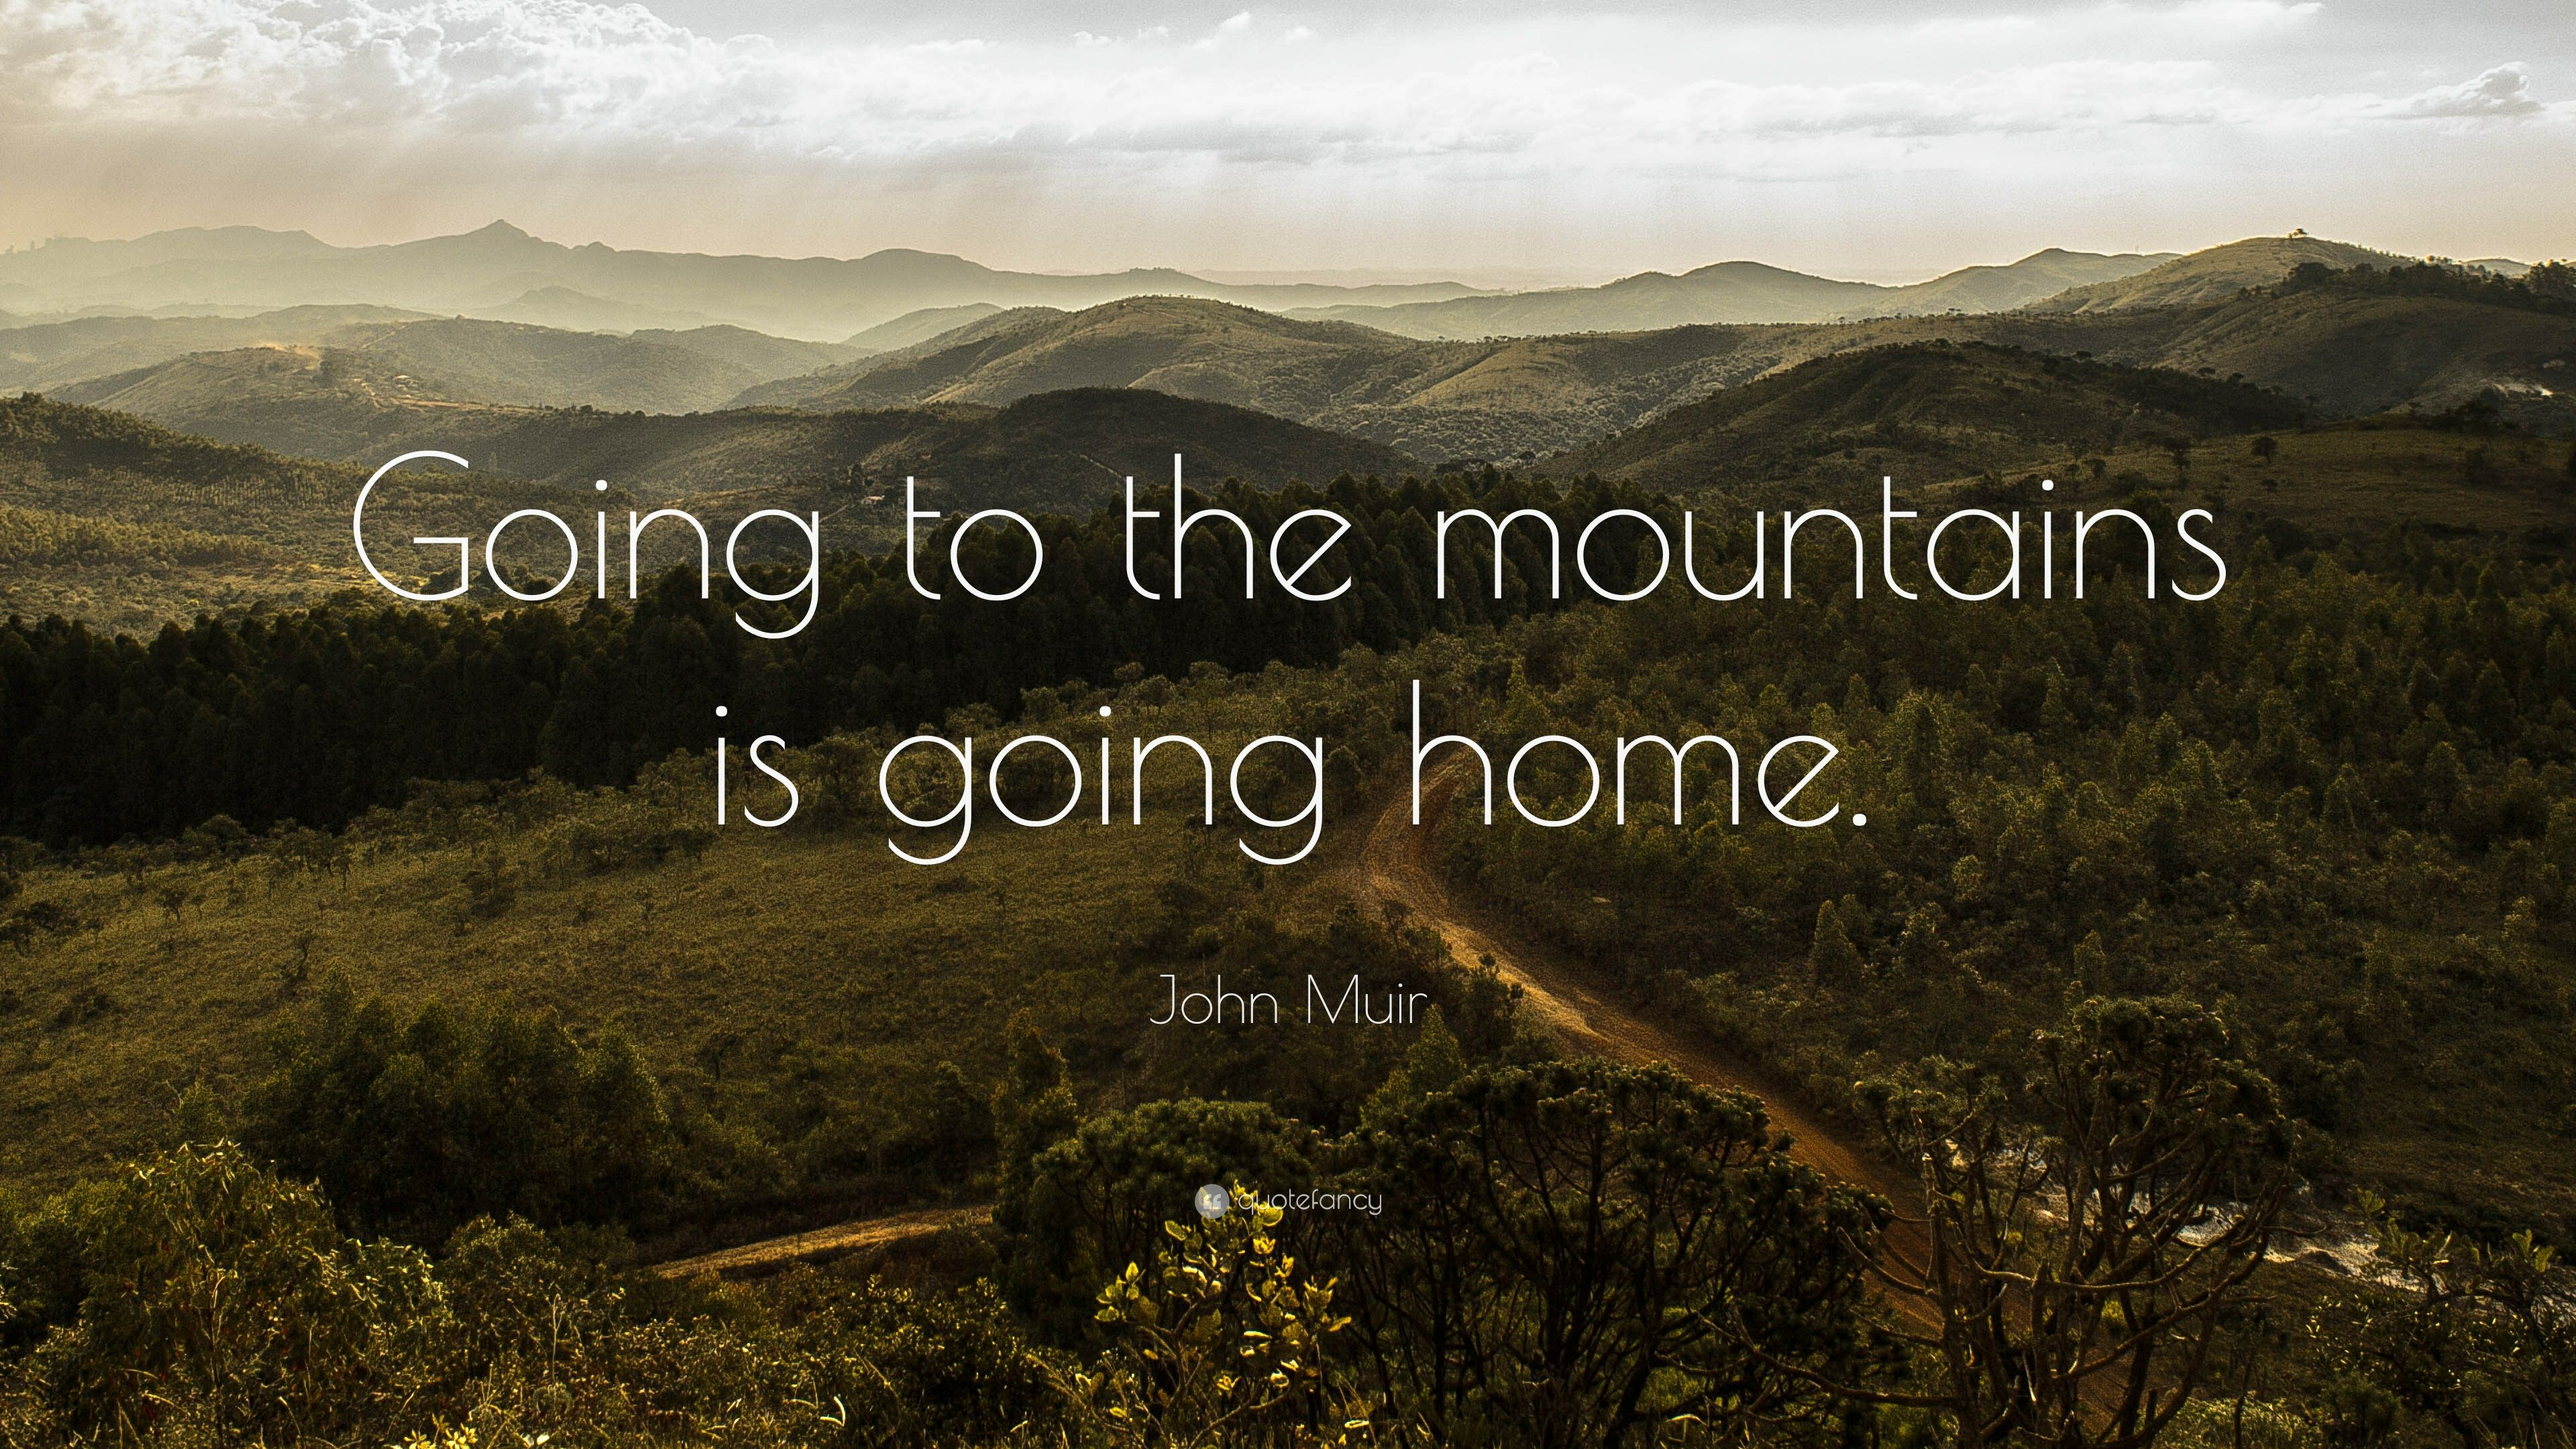 John Muir Quotes John muir quotes, Thoreau quotes, Henry